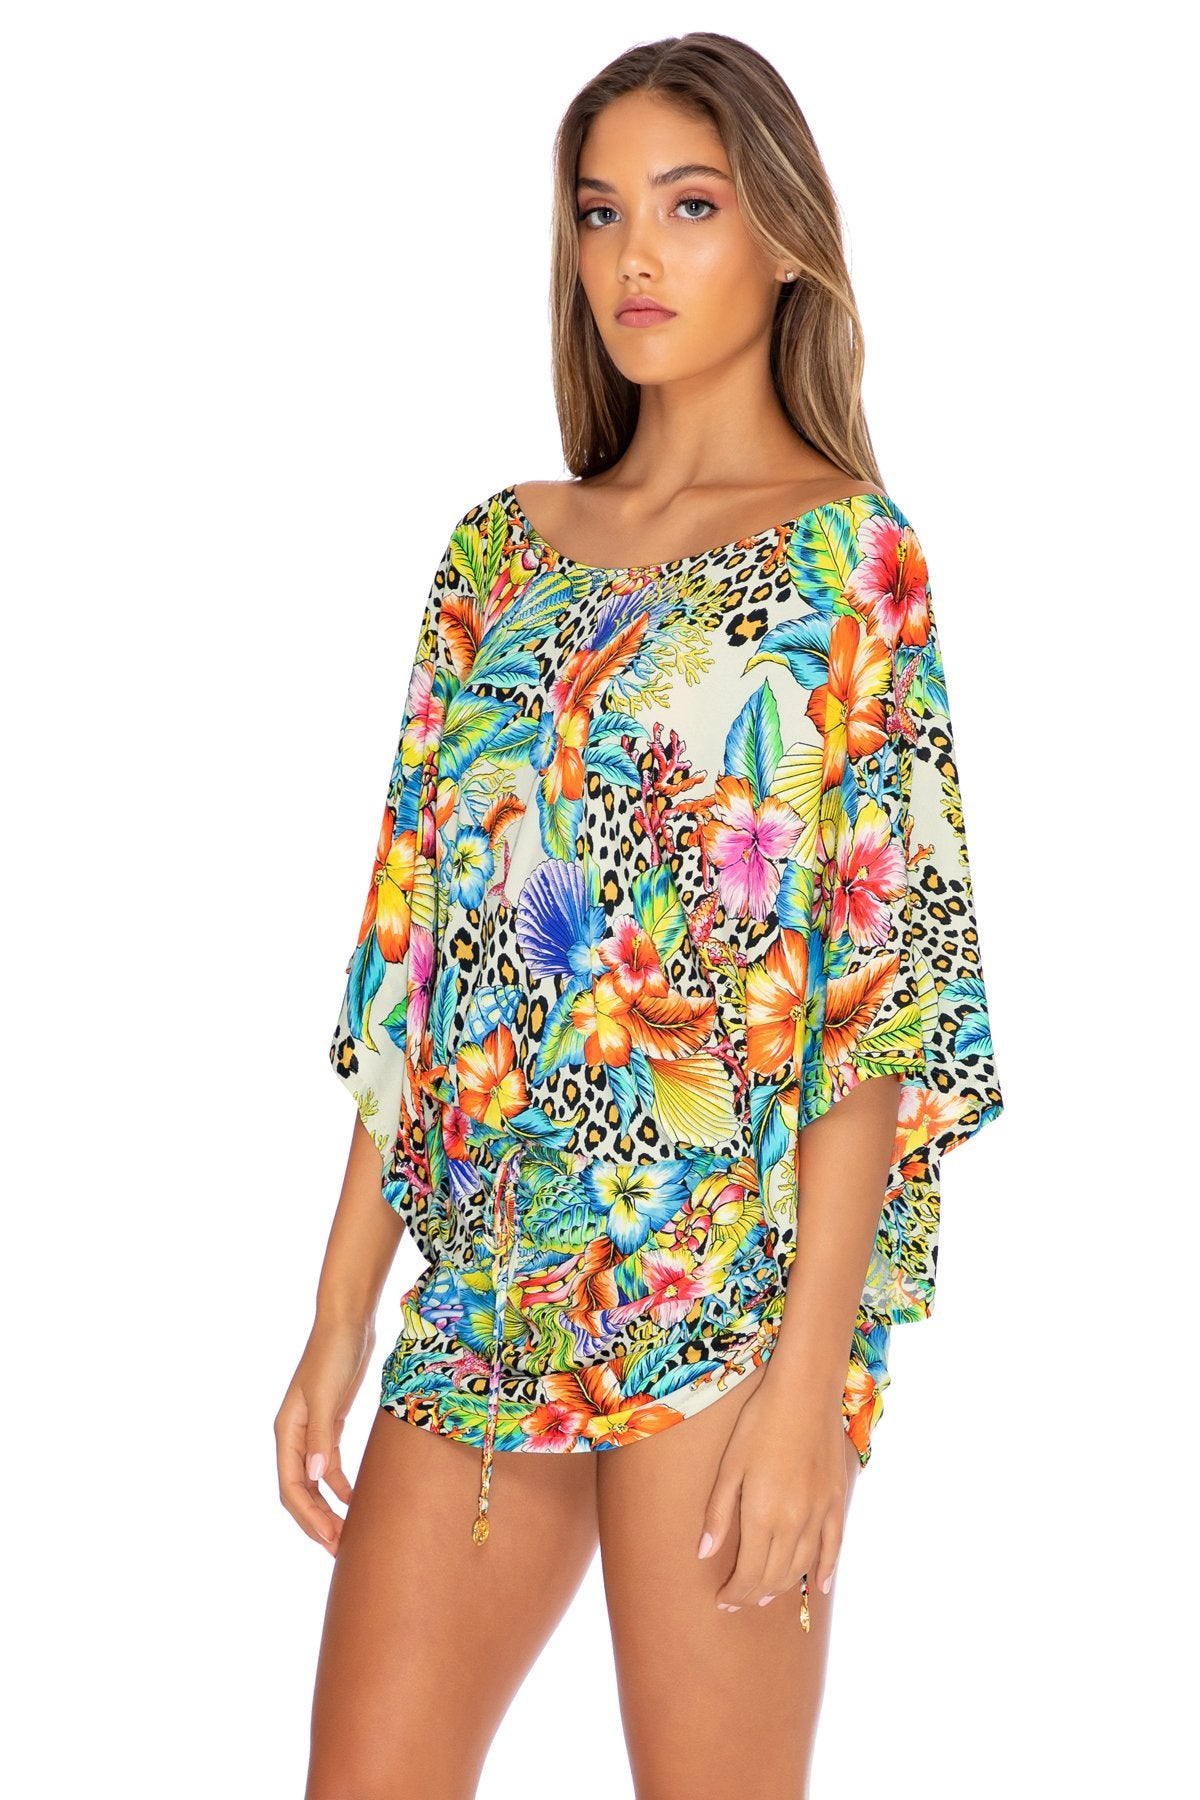 LULI'S JUNGLE - South Beach Dress • Multicolor